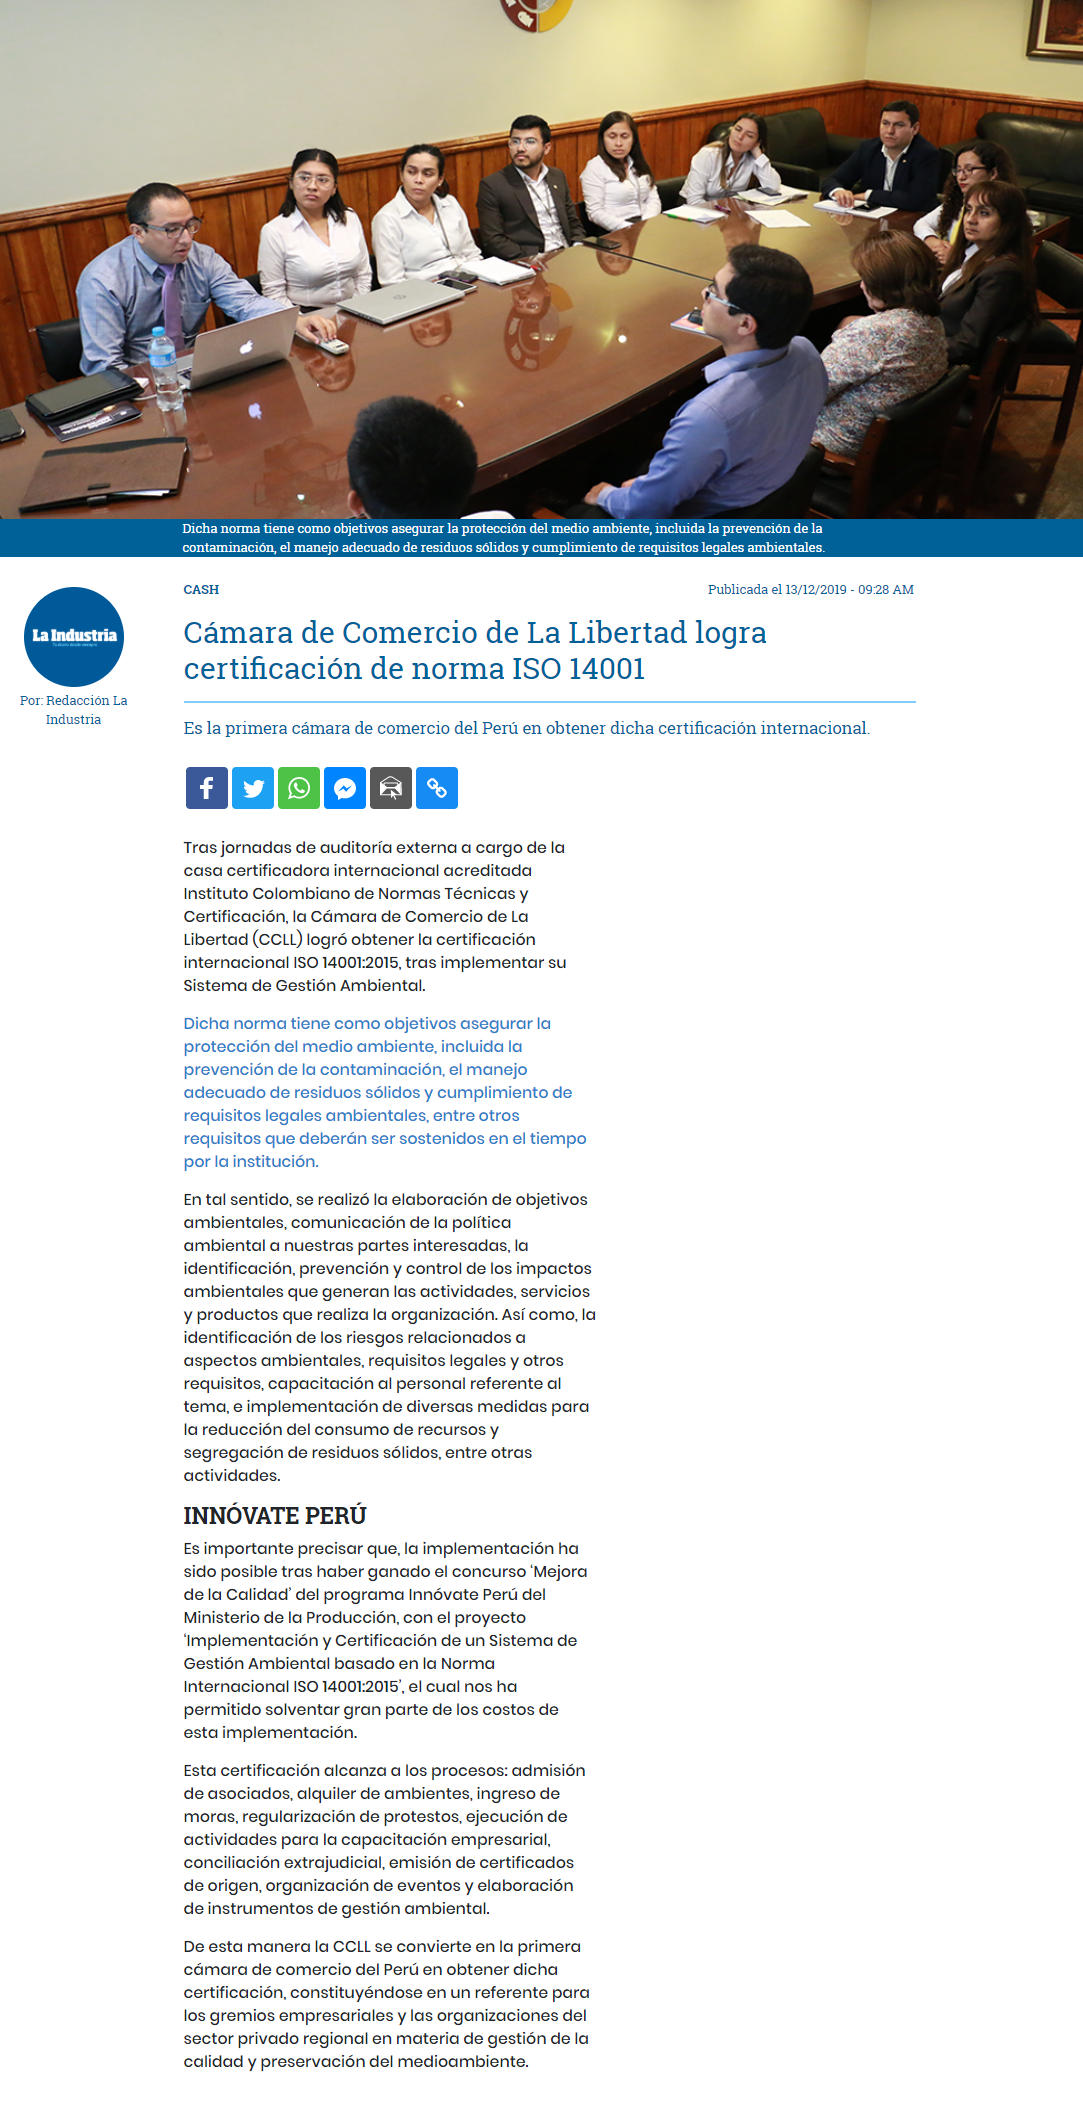 16.12.19.06 LA INDUSTRIA ccll implementa ISO14001